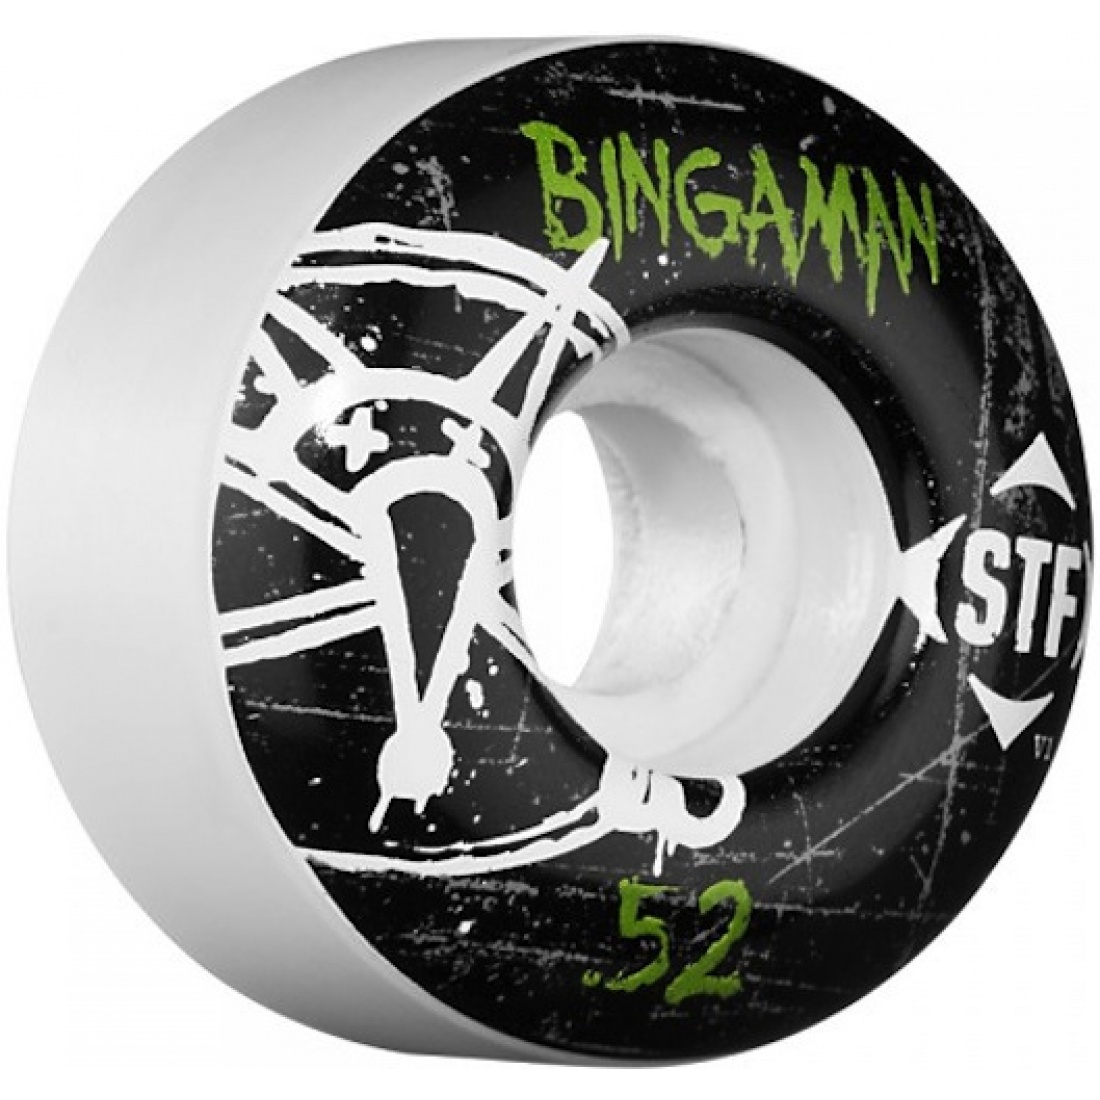 Bones Bingaman Oh Gee Streettech 52MM Wheels (Set of 4)